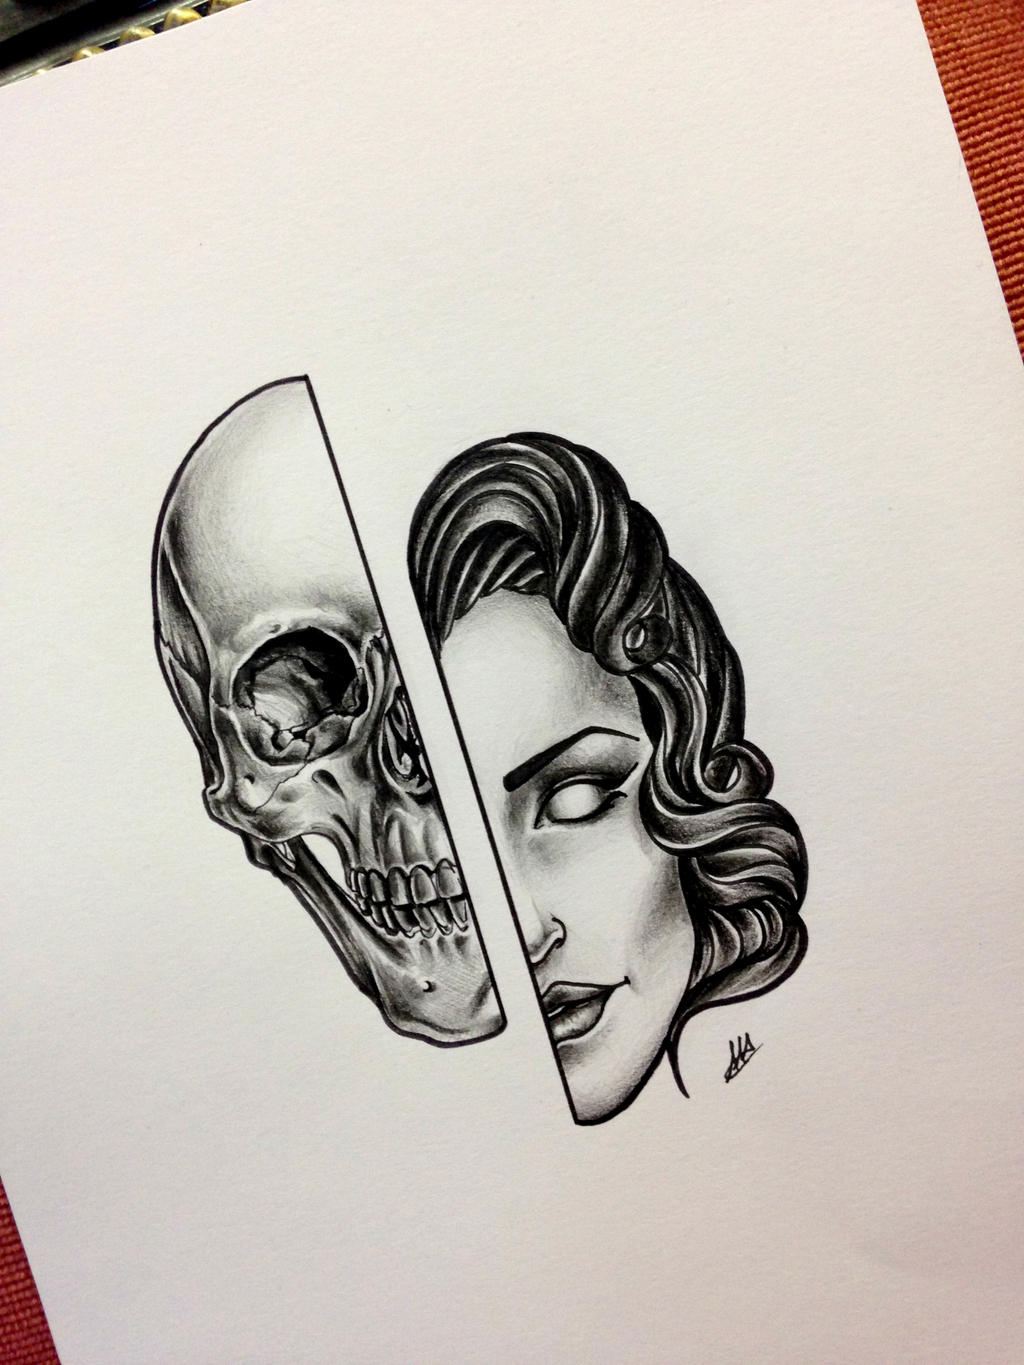 Donna danno by antoniettaarnonearts on deviantart for Vampire skull tattoo